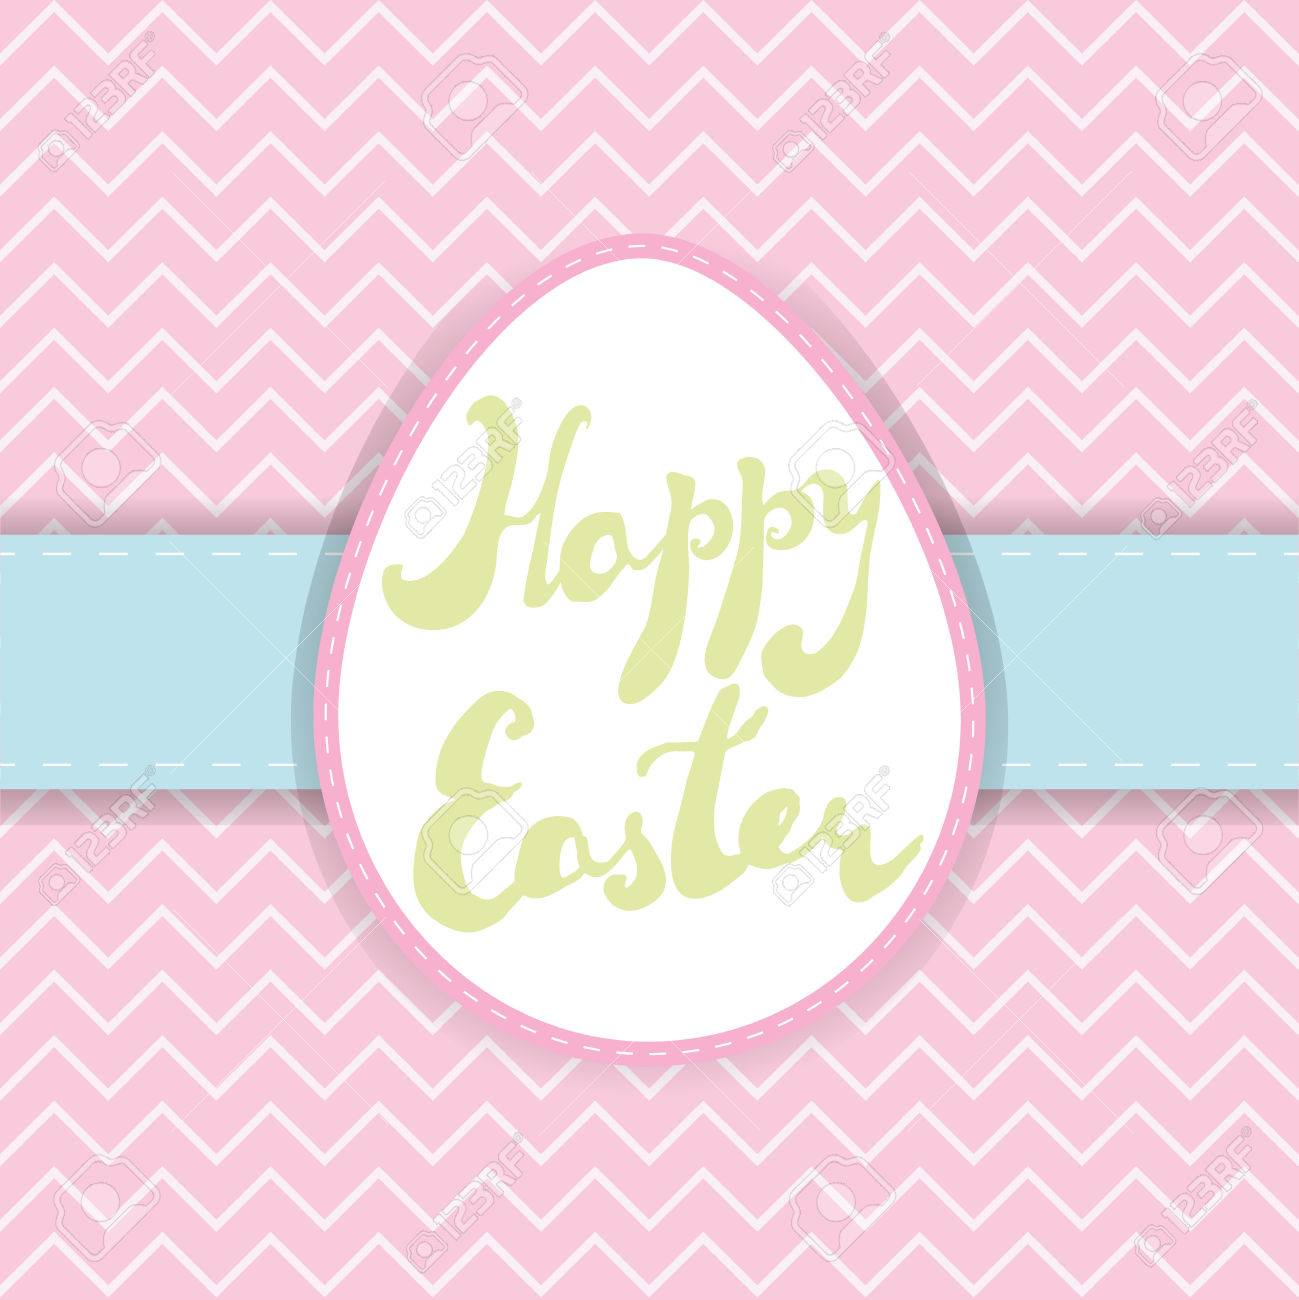 photo regarding Happy Easter Banner Printable identify Printable Easter greeting card. Handwritten words and phrases